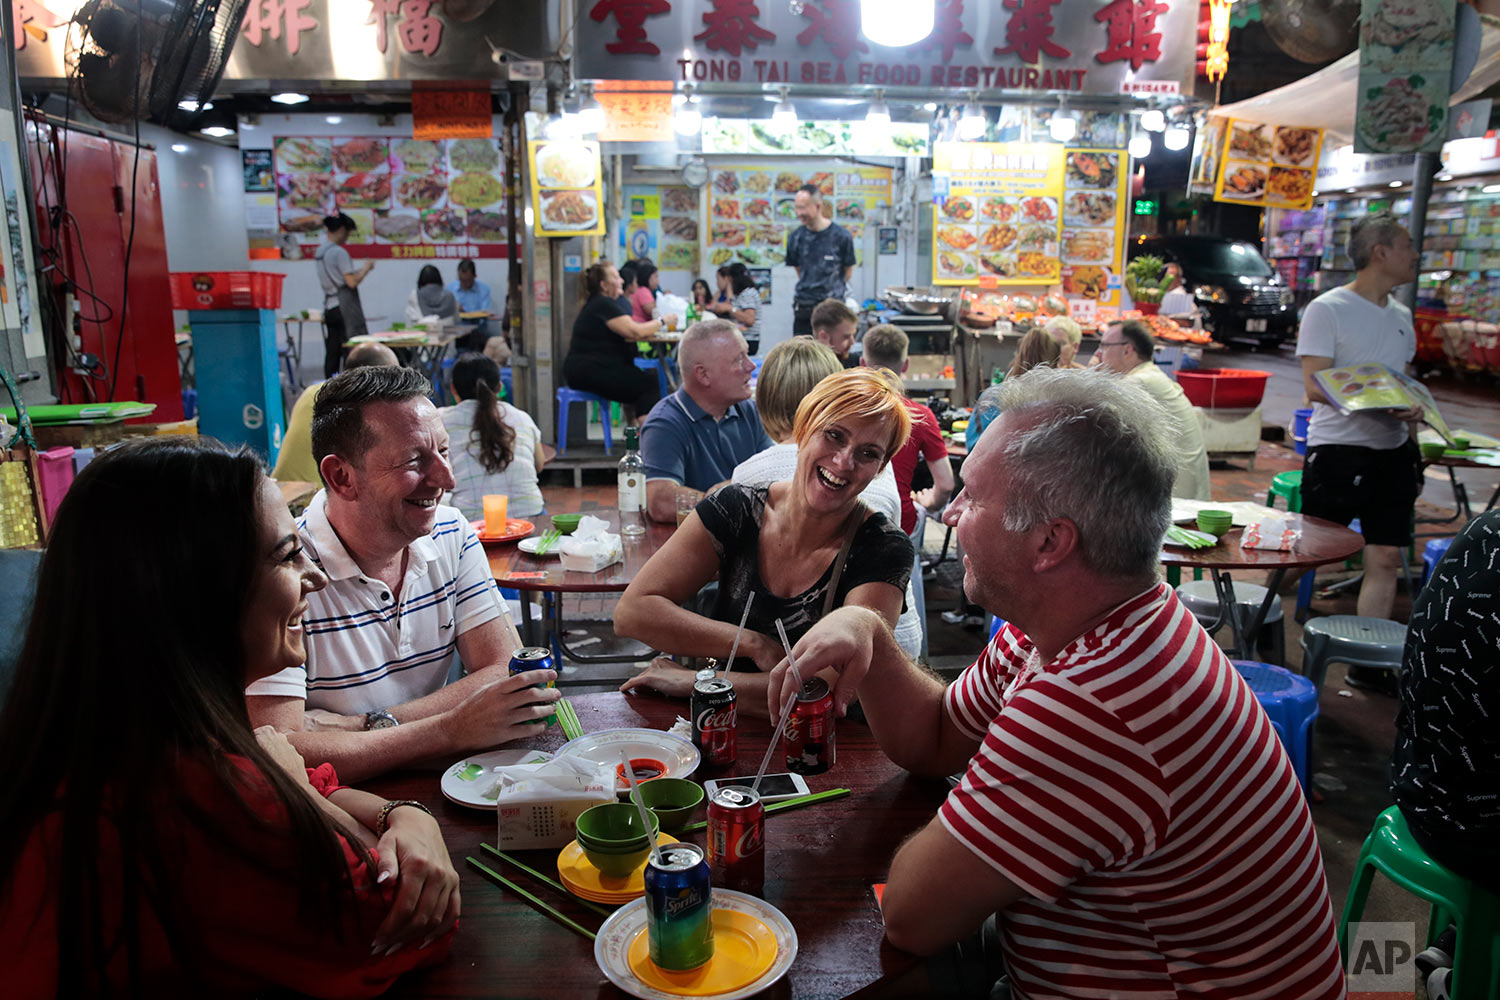 A group of British tourists share a laugh around a dinner table at Temple Street Night Market in Hong Kong, Sept. 2, 2019. (AP Photo/Jae C. Hong)